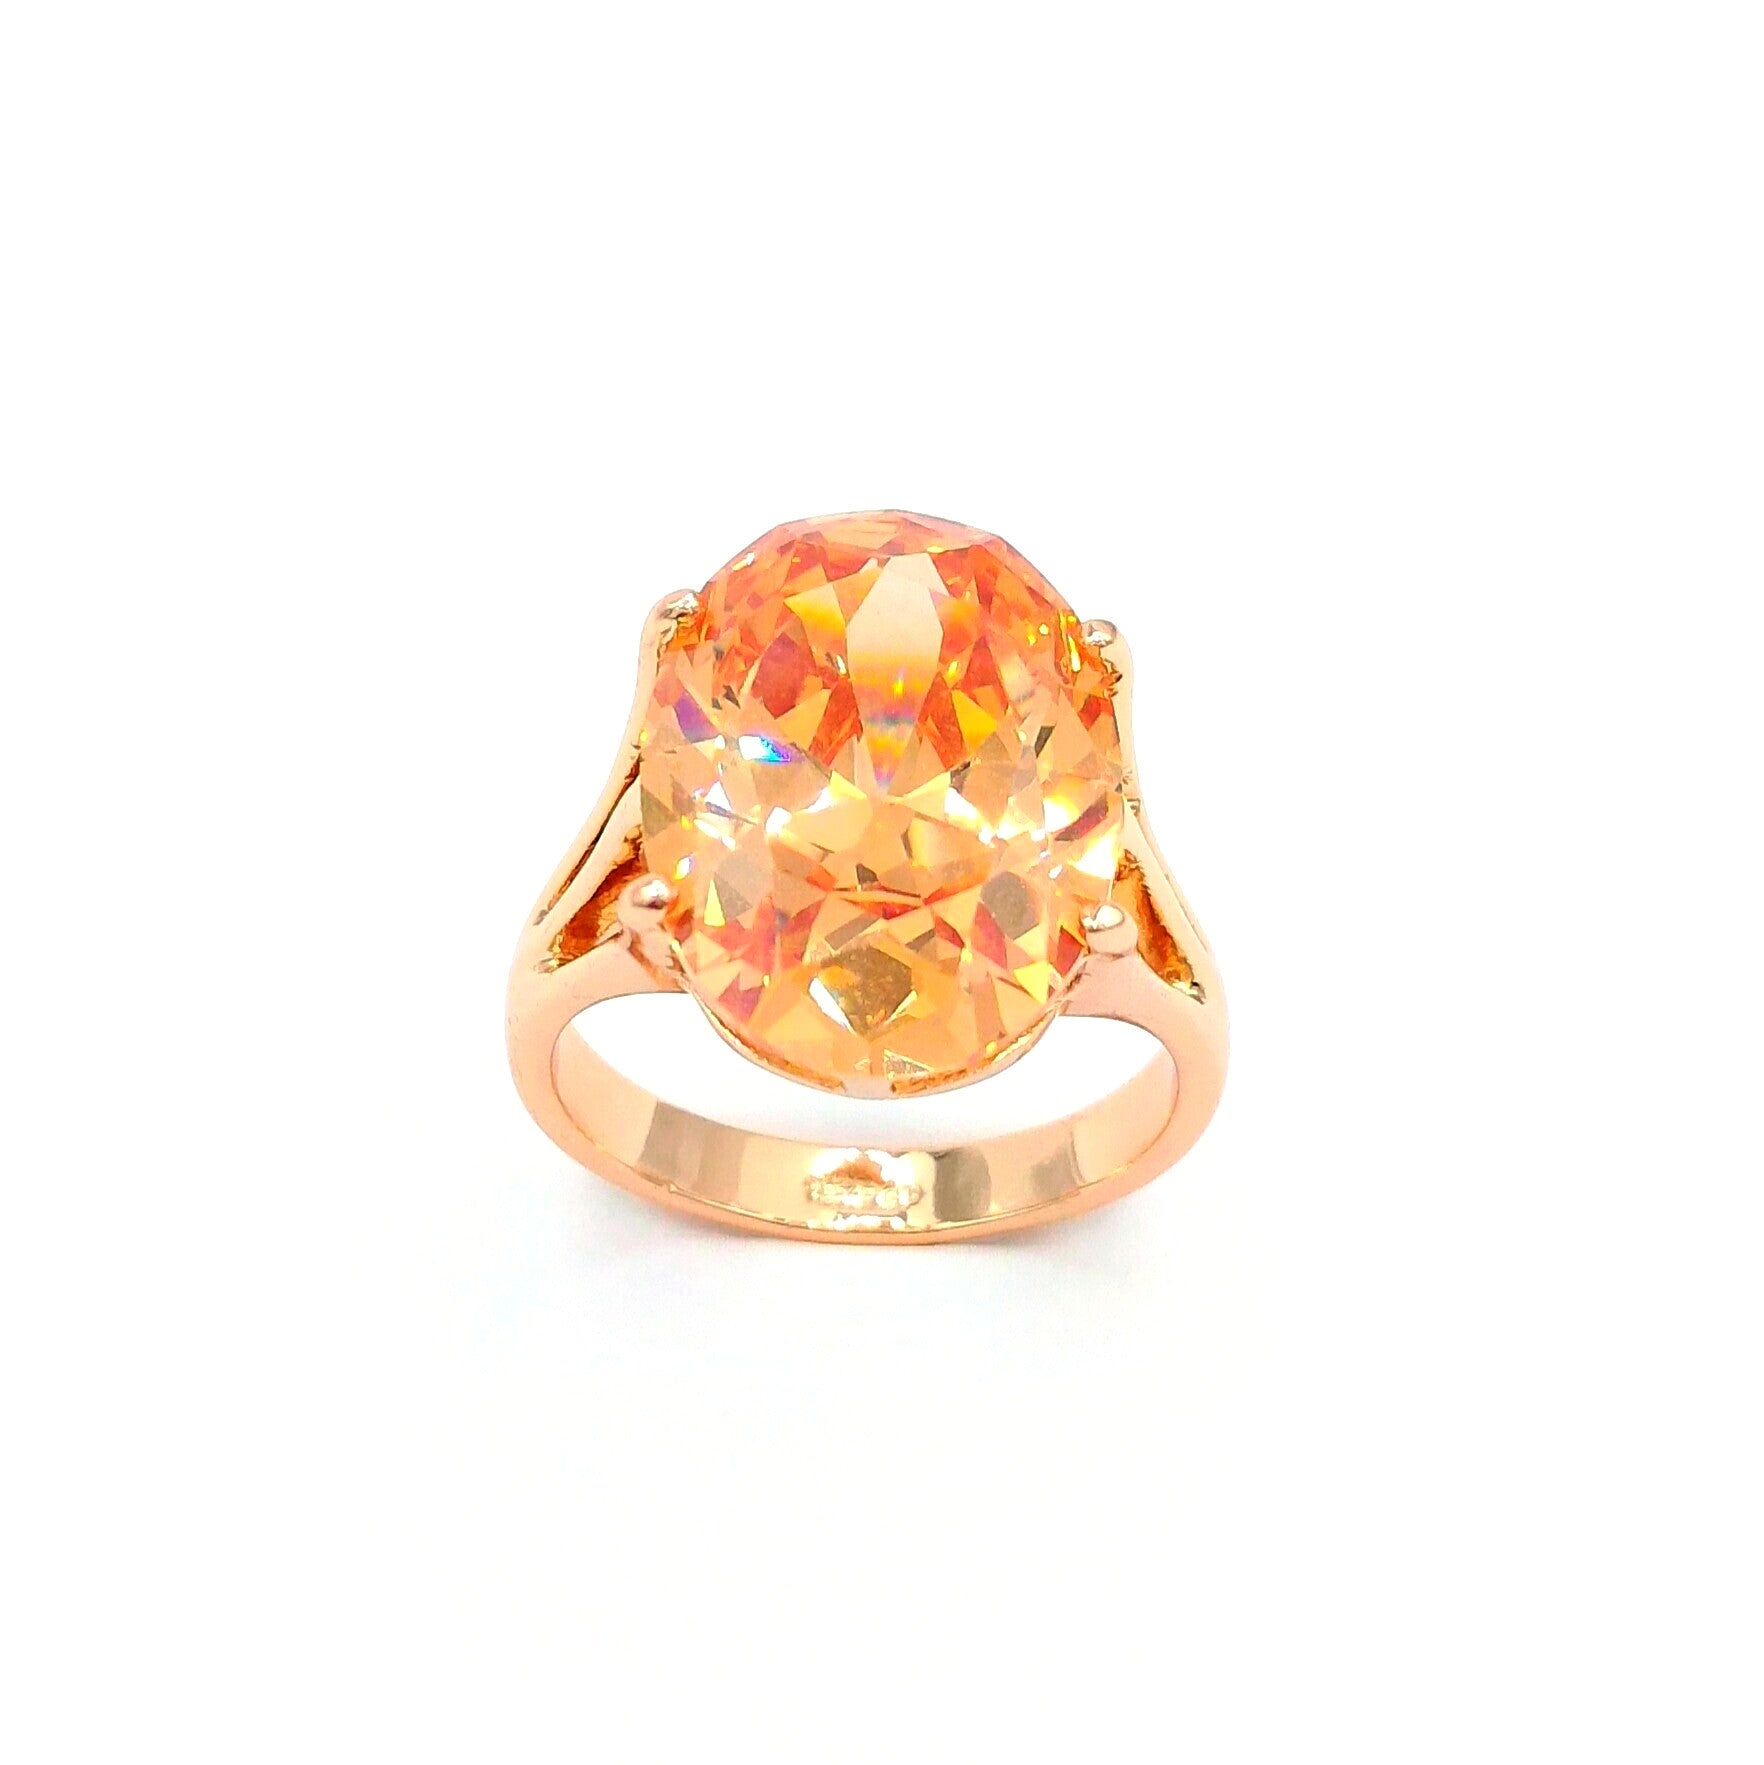 bespoke false cox mandarin product power gold upscale engagement subsampling ring scale amber shop garnet and crop rings